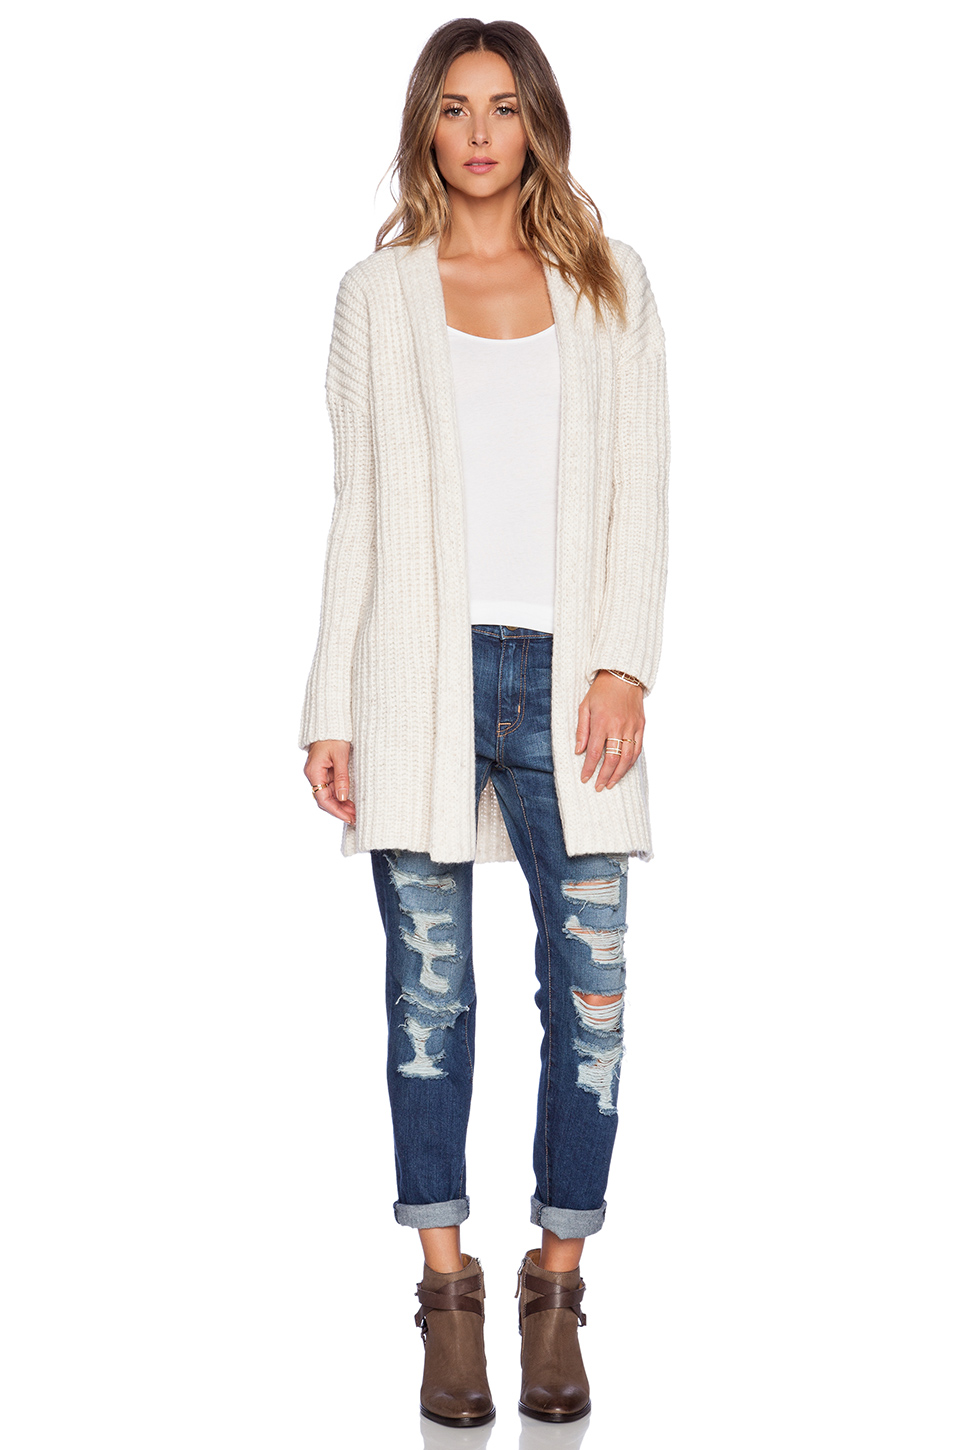 Merritt charles ryder english rib cardigan in ivory from revolveclothing.com